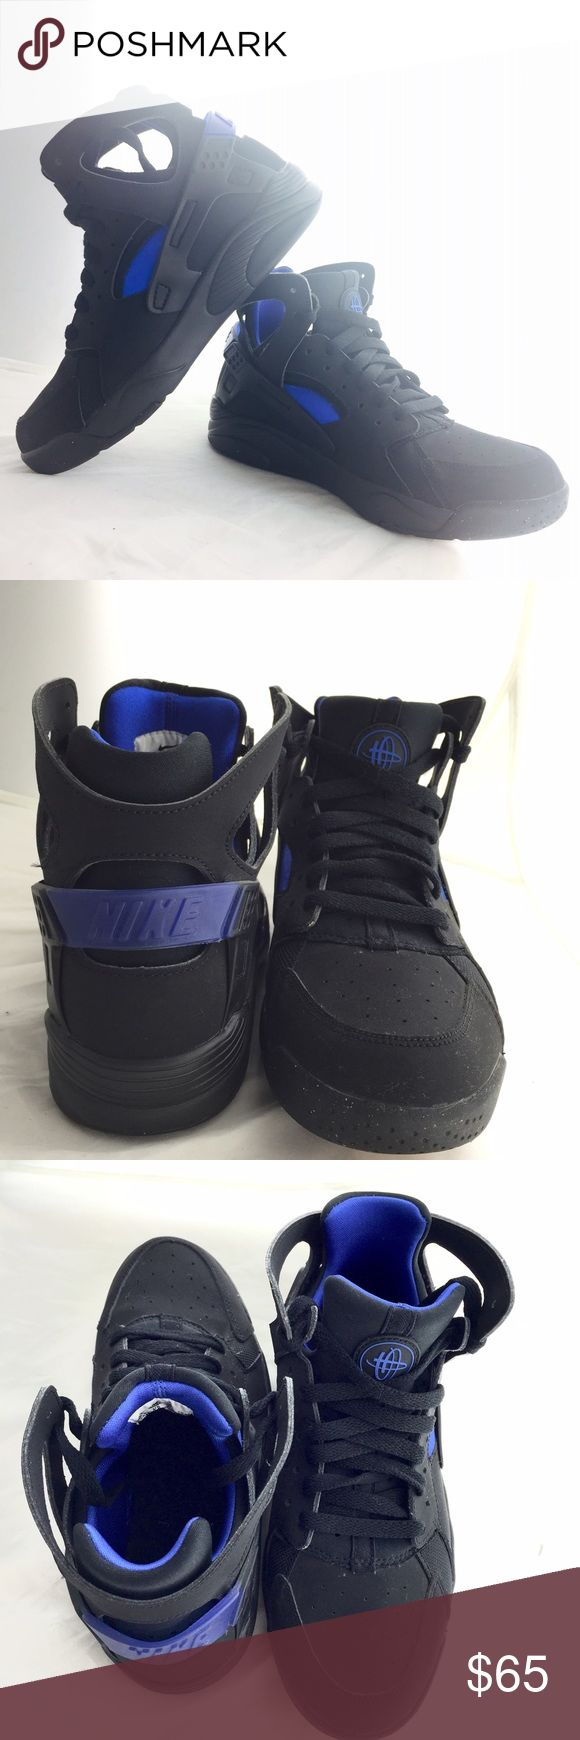 Black&Blue High Top Nike Huaraches These are a US Boys 6Y, I wear a US 7 women's sneakers and these fit perfectly. Barely worn, no scuffs or marks. Nike Shoes Sneakers